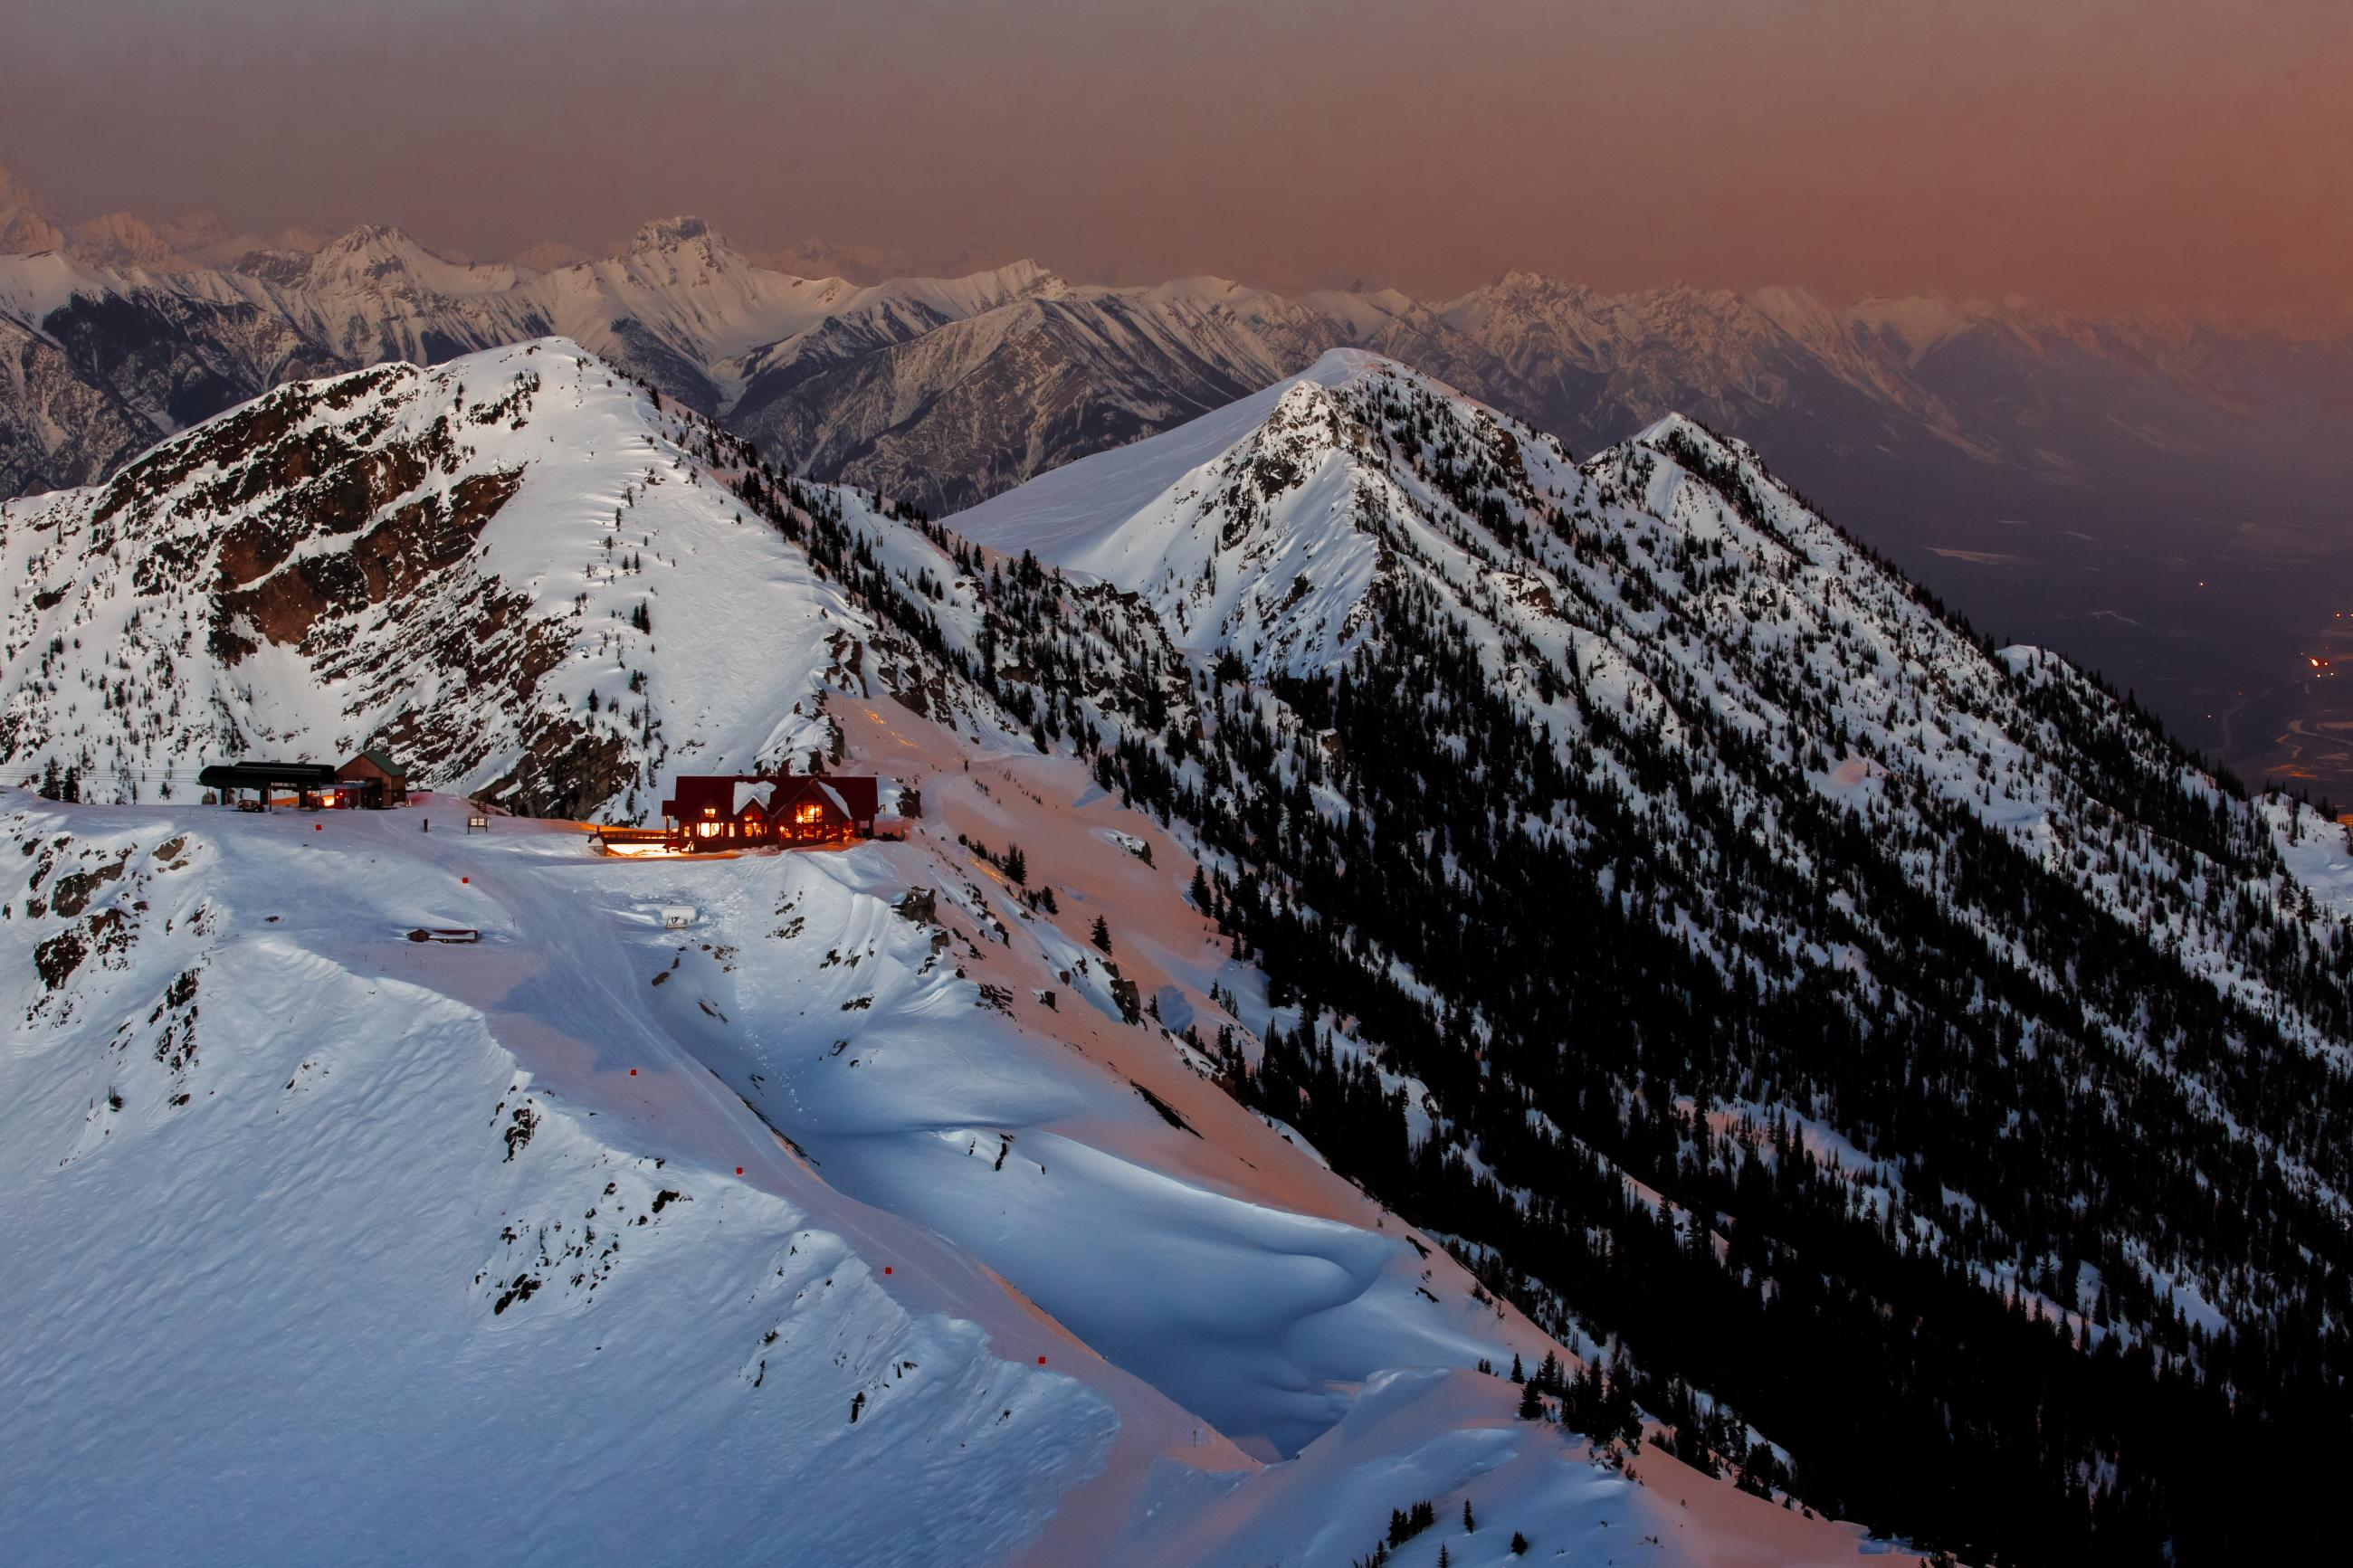 heli life with Kicking Horse on 4304v3 additionally reefmagiccruises besides Craving Arctic Crossings And Dune Buggy Races Momentum Adventures Will Take You There in addition S H I E L D besides Colin McRaes Grieving Father Speaks Sons Ironic Death.